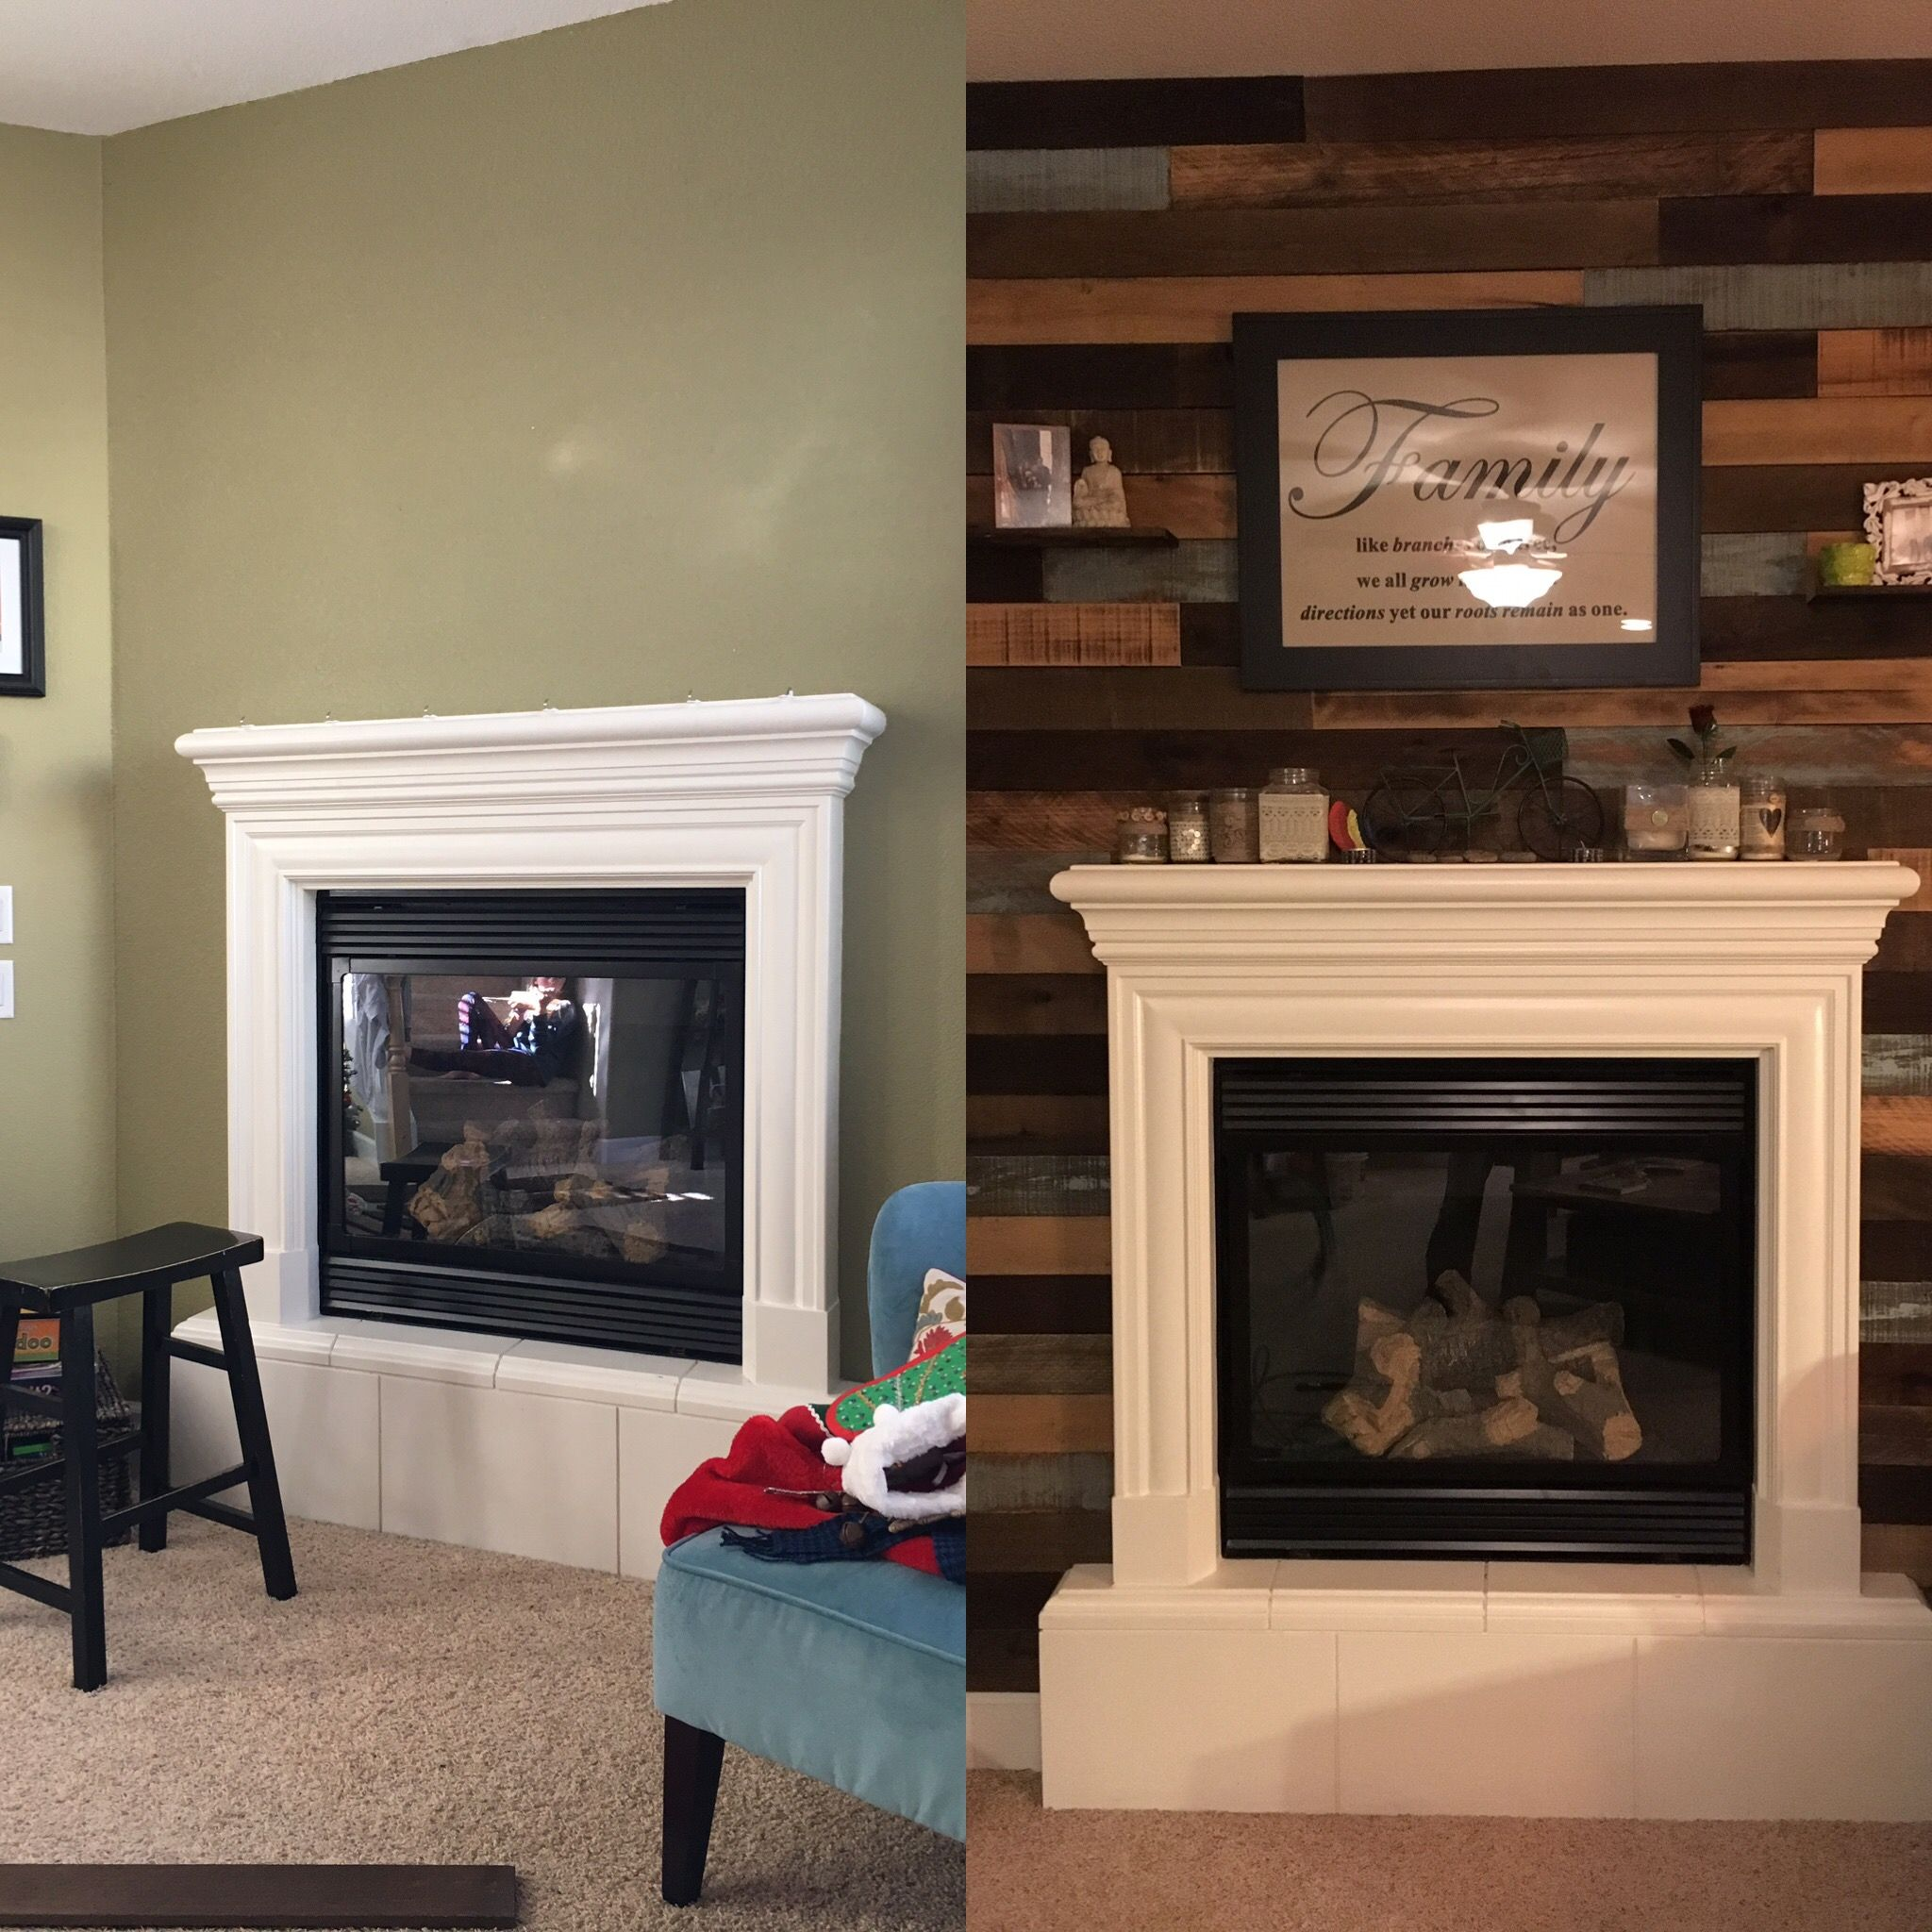 Wood Covered Fireplace Inspirational Reclaimed Wood Fireplace Wall for the Home